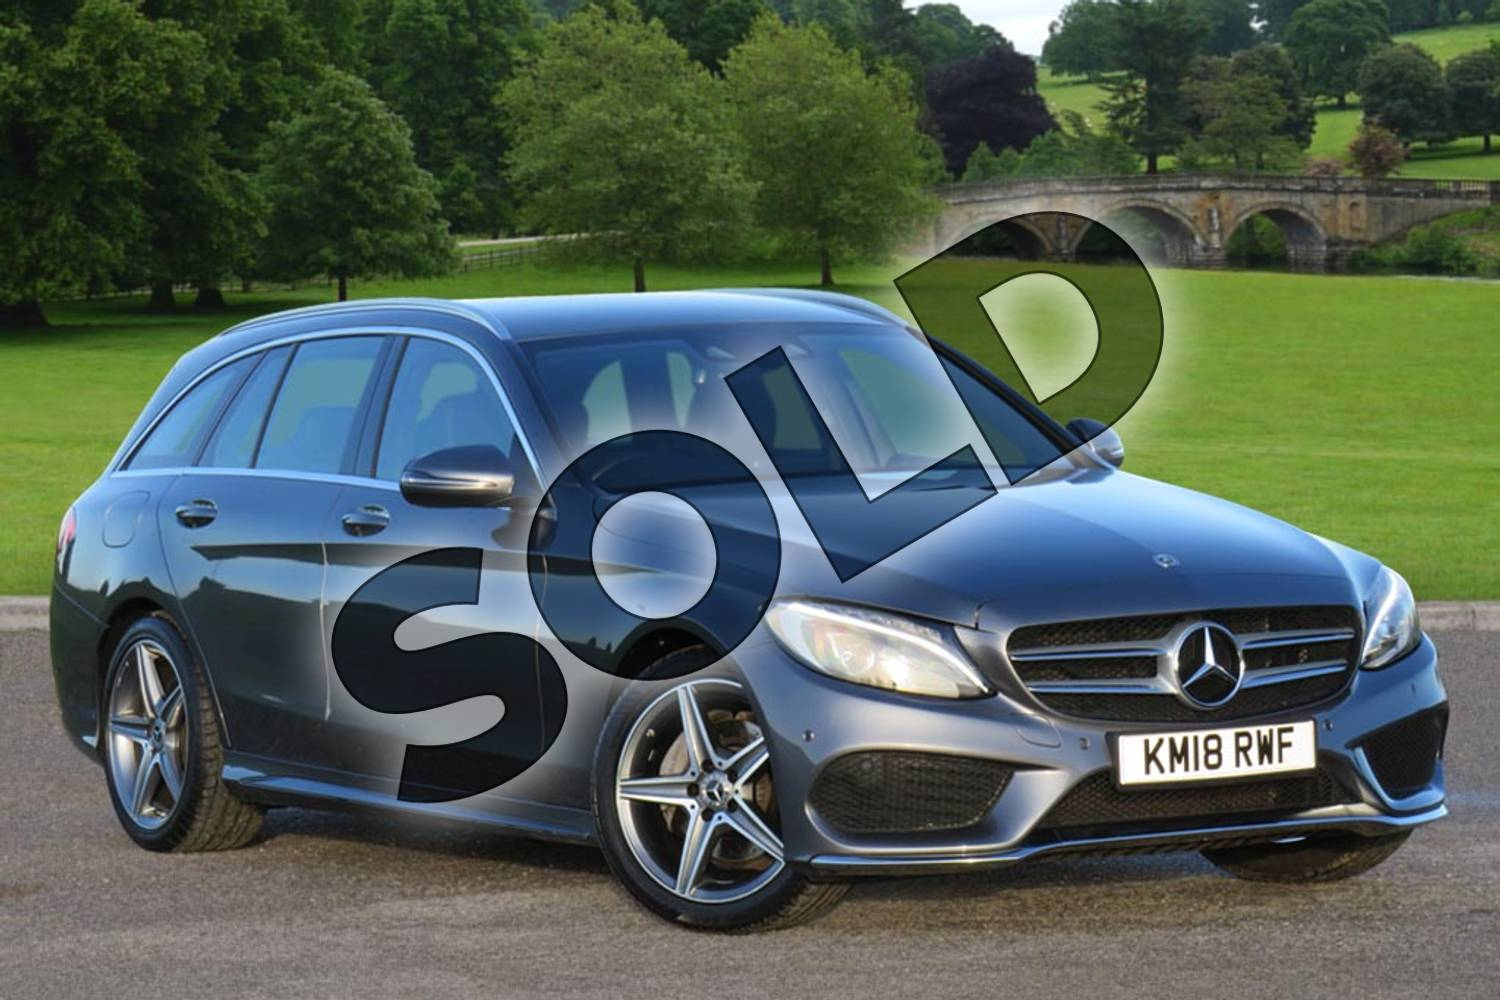 2018 Mercedes-Benz C Class Diesel Estate Diesel C220d AMG Line 5dr 9G-Tronic in selenite grey metallic at Mercedes-Benz of Boston